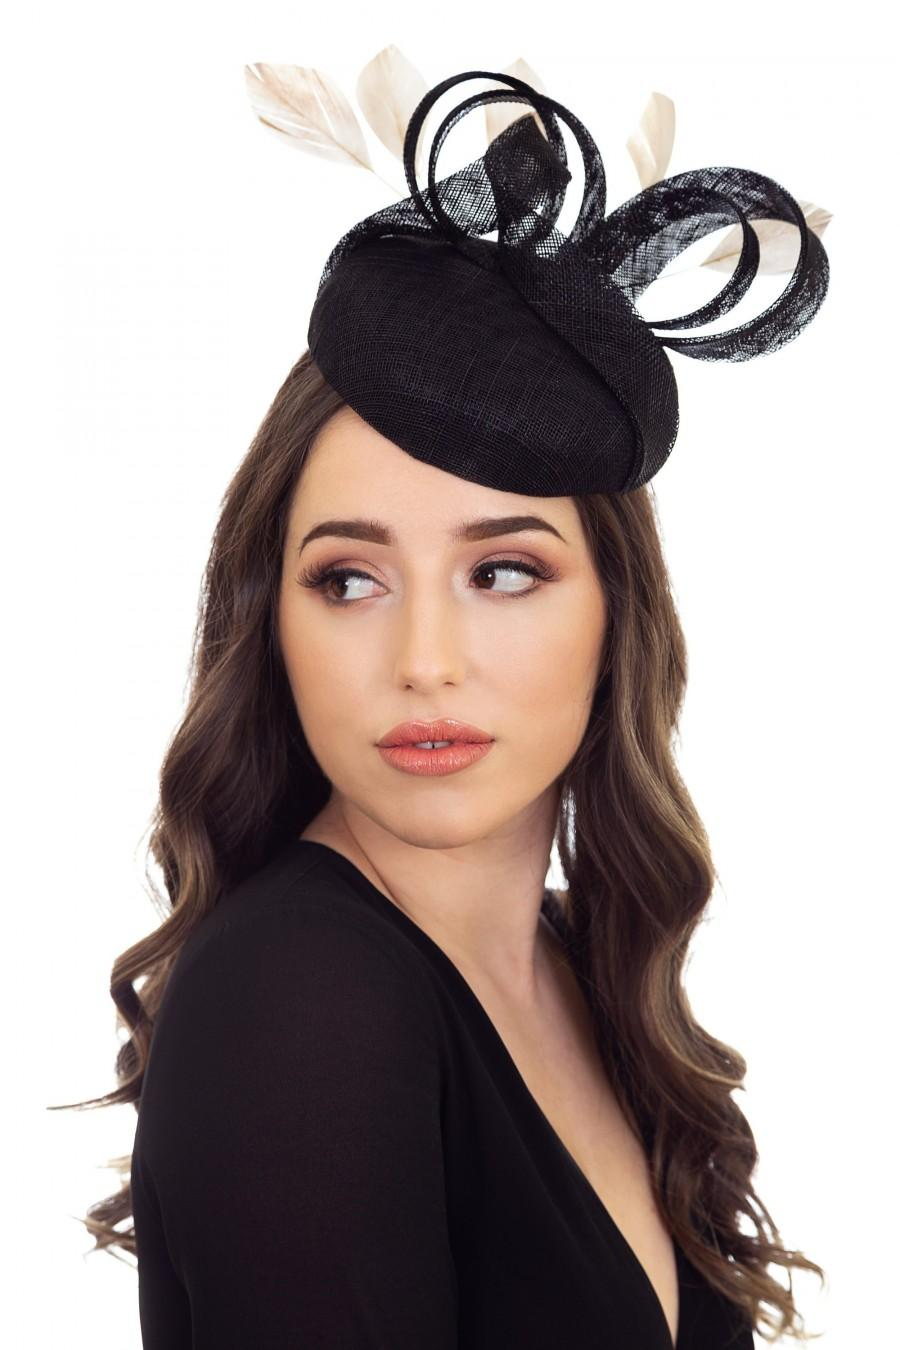 Wedding - Black & Gold Hat, Black and Gold Fascinator, Black and Gold Millinery, Custom Hat, Racing Hat, Hat for Women, Wedding Hat - ABRIL